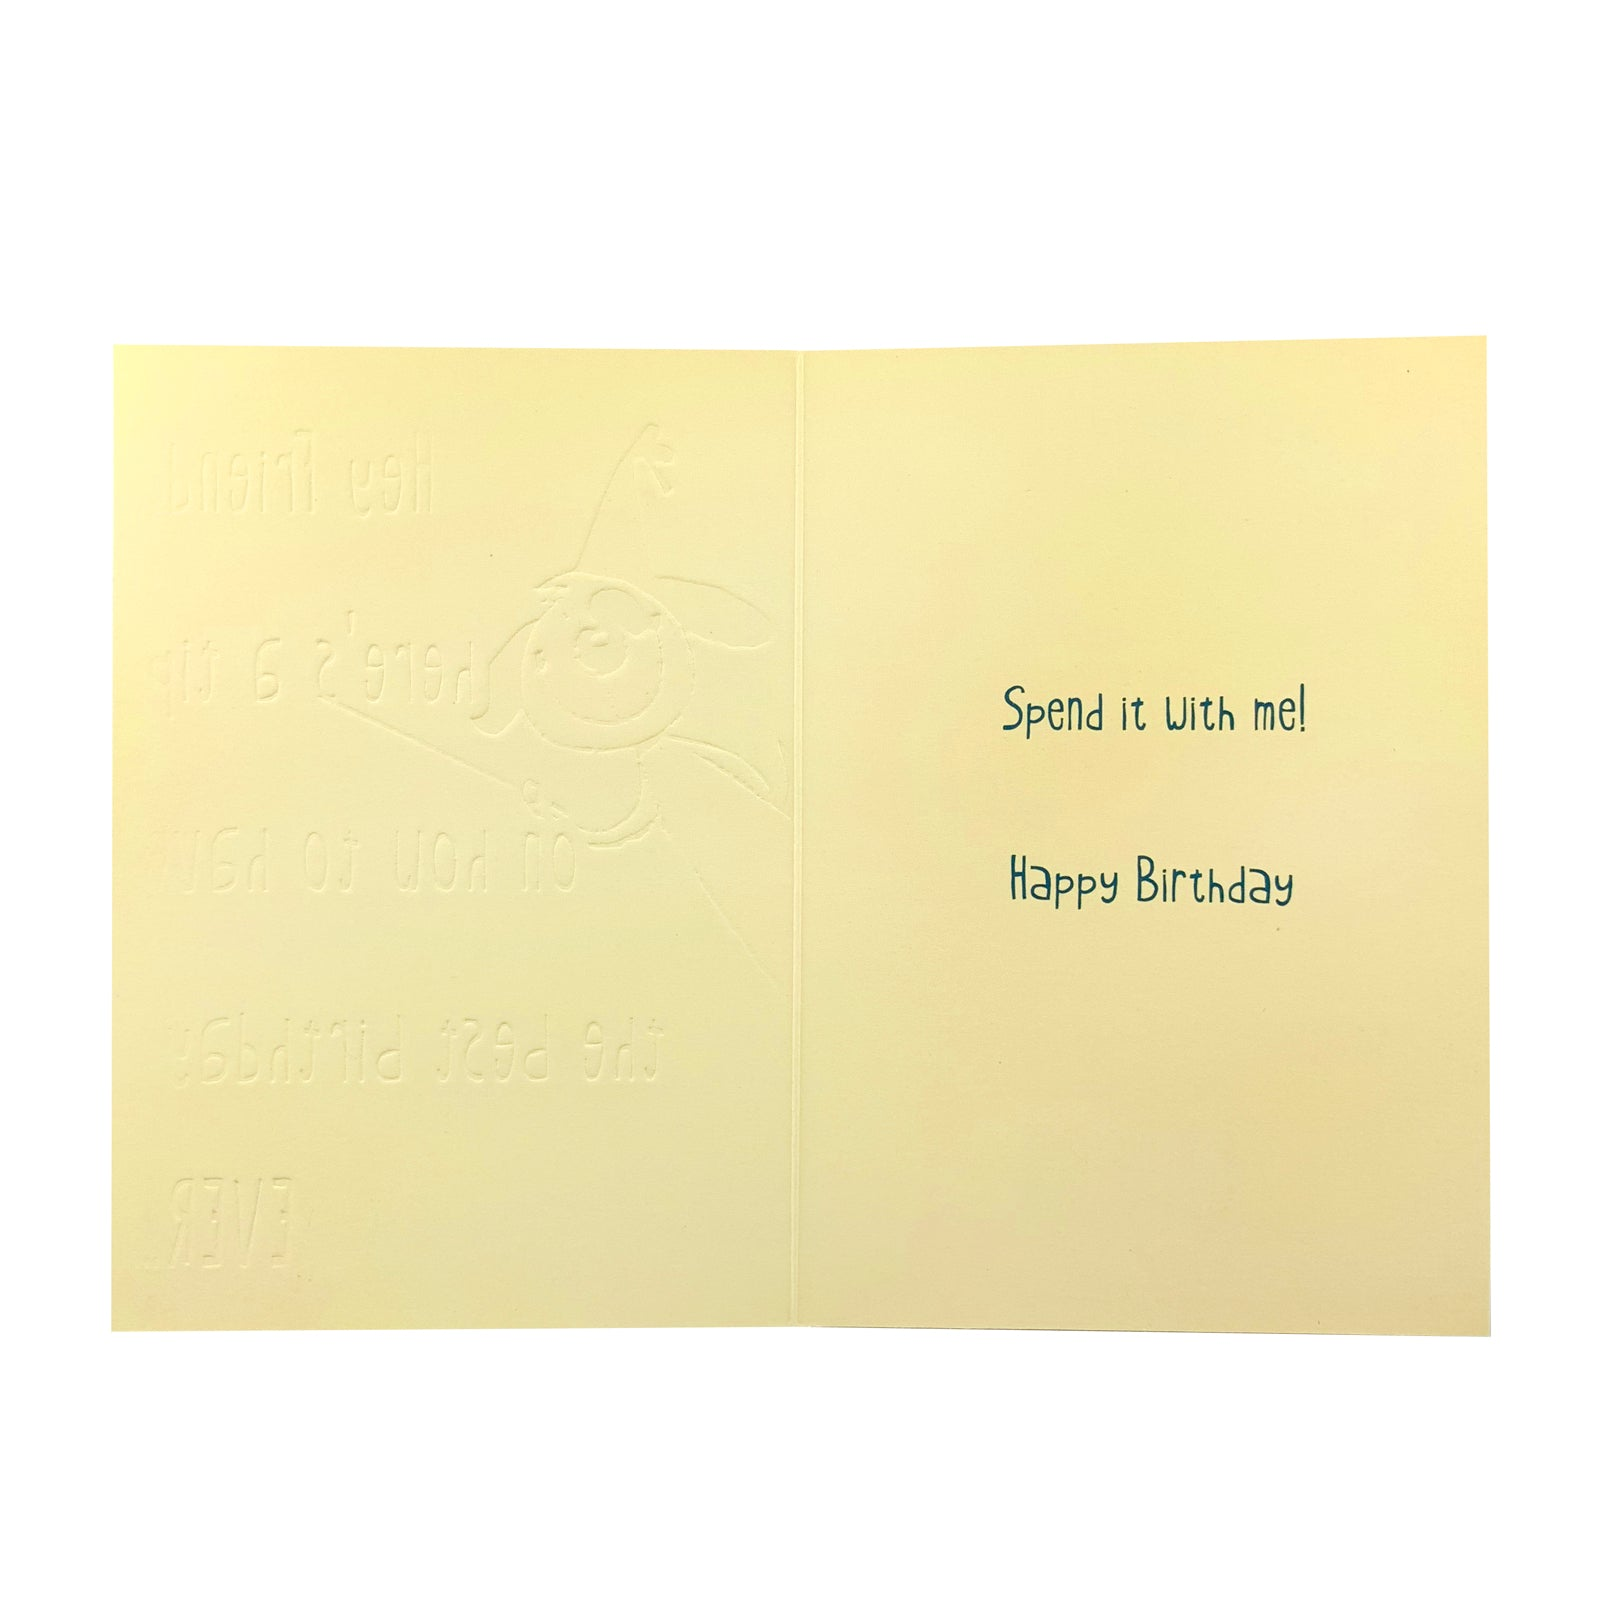 Designer Greetings Birthday Card - Hey Friend Here's A Tip Dog